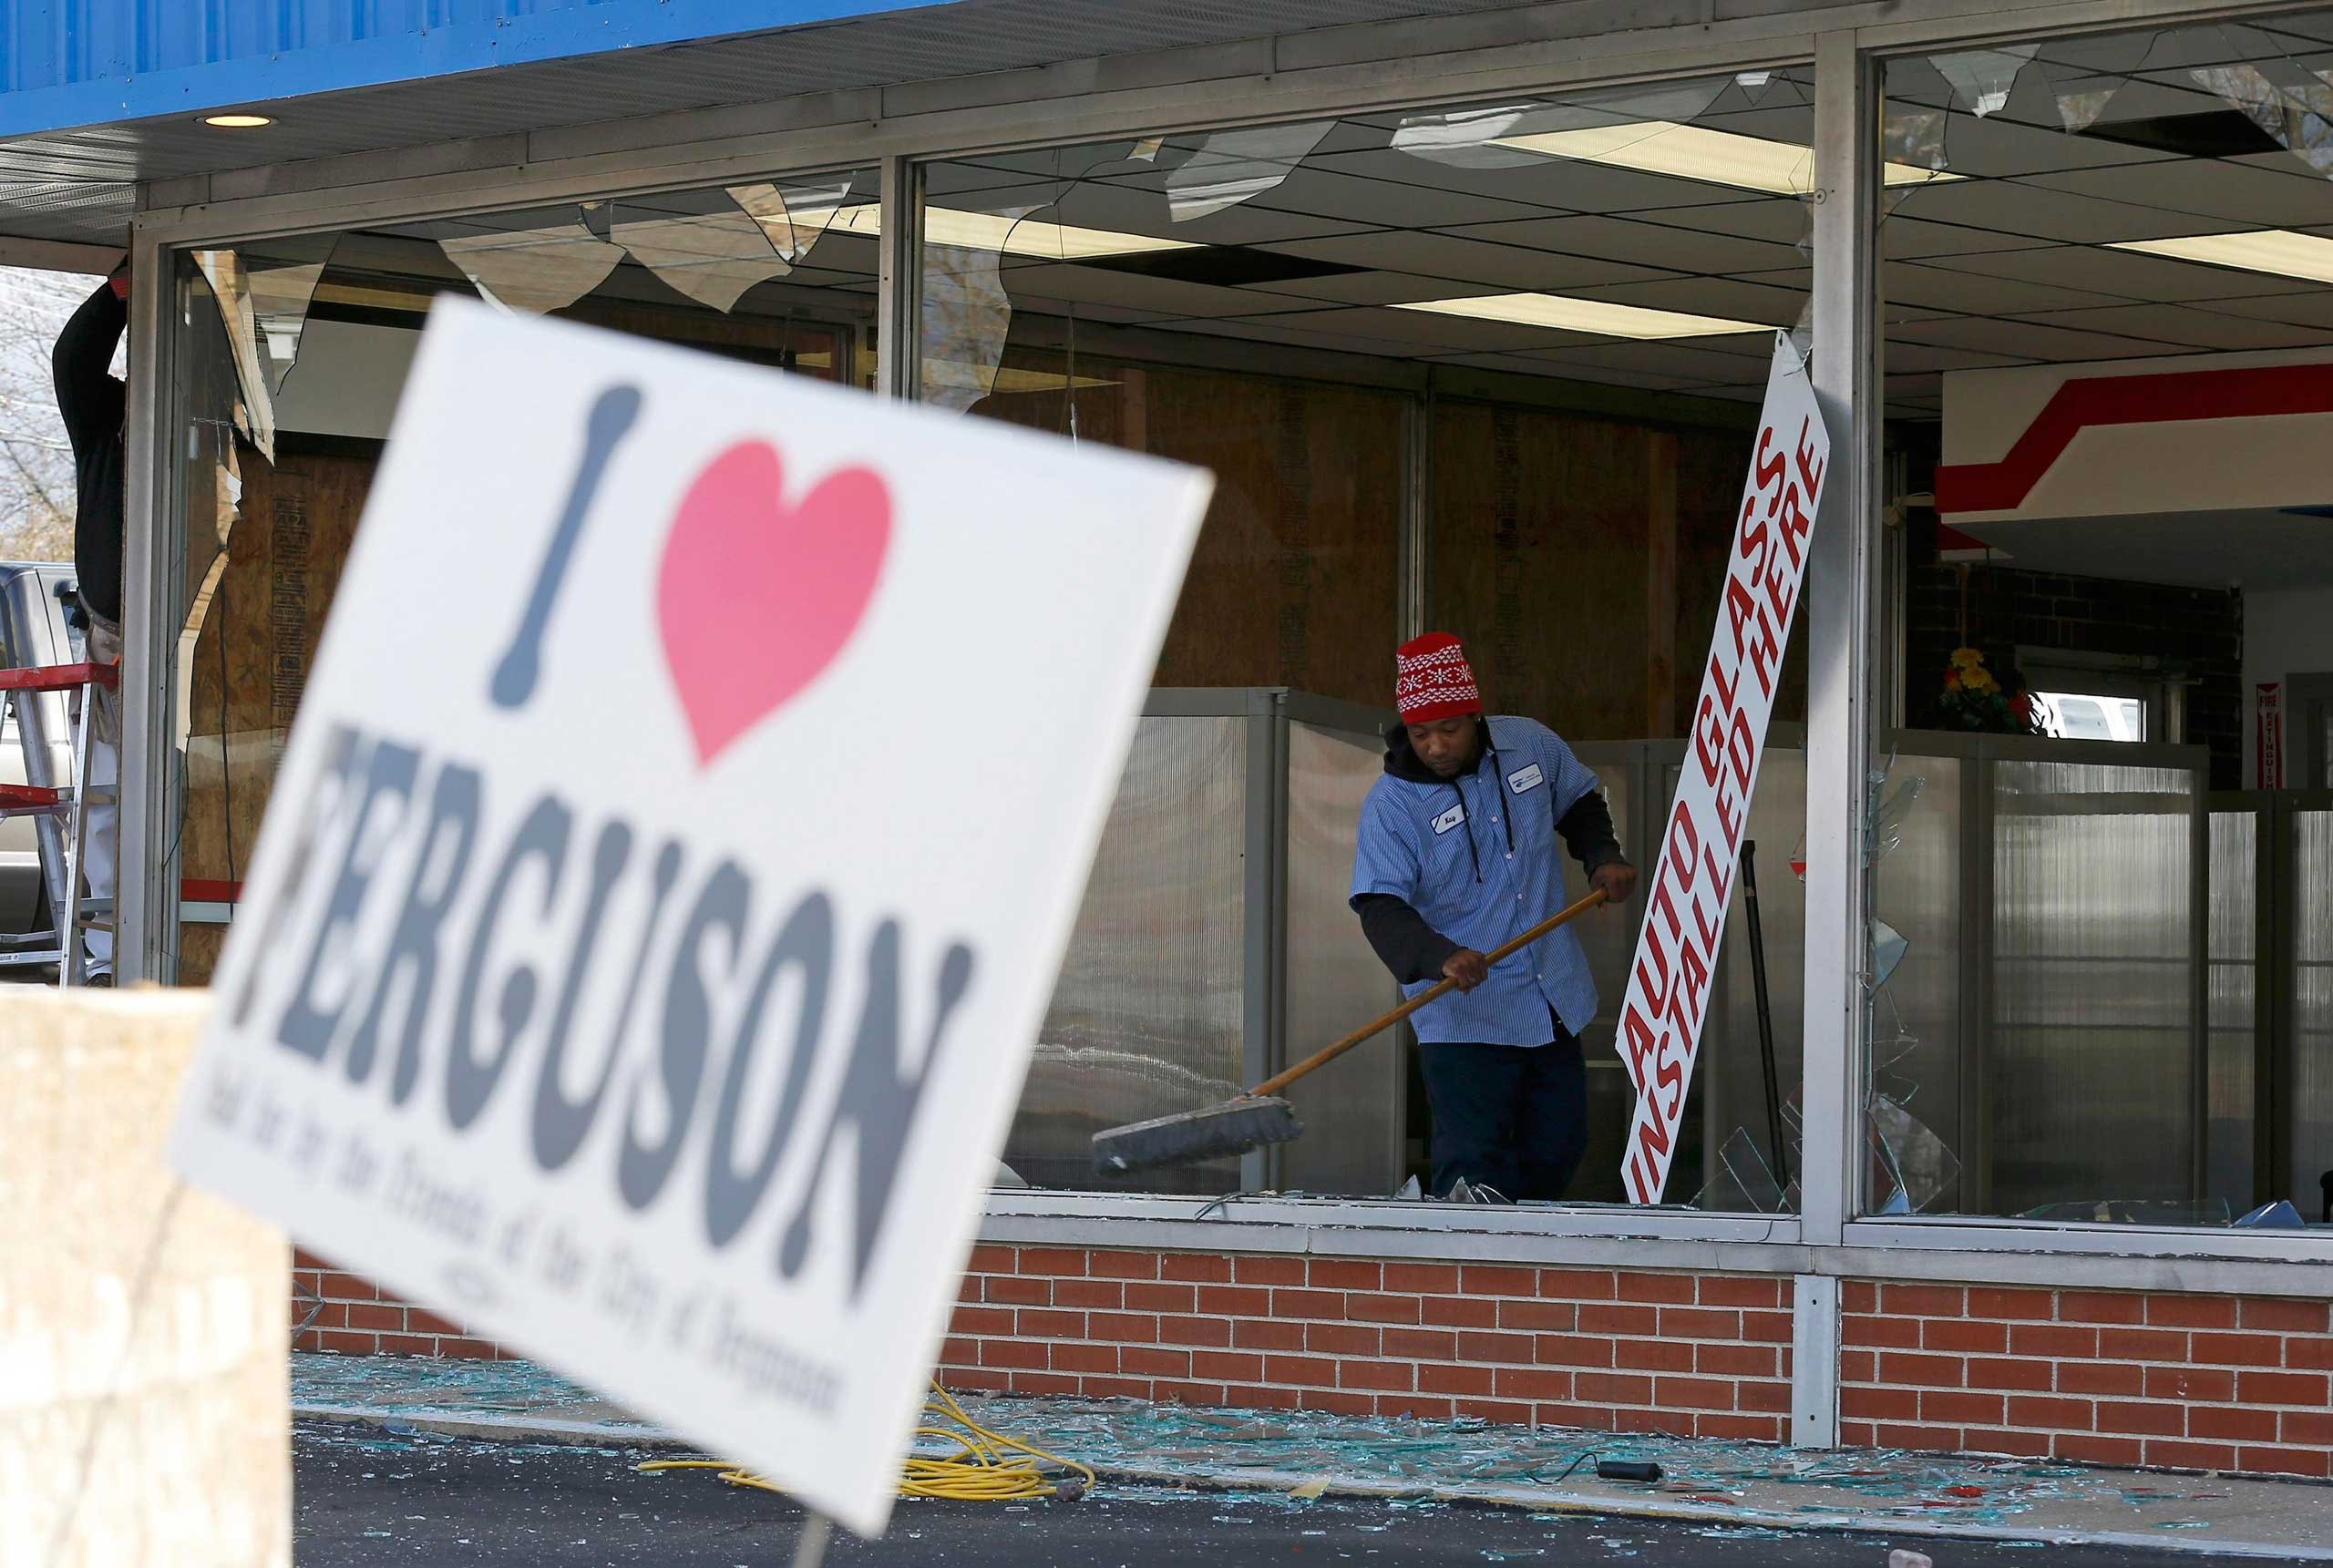 People clean up a business that was damaged in riots the previous night in Ferguson, Mo. on Nov. 25, 2014.